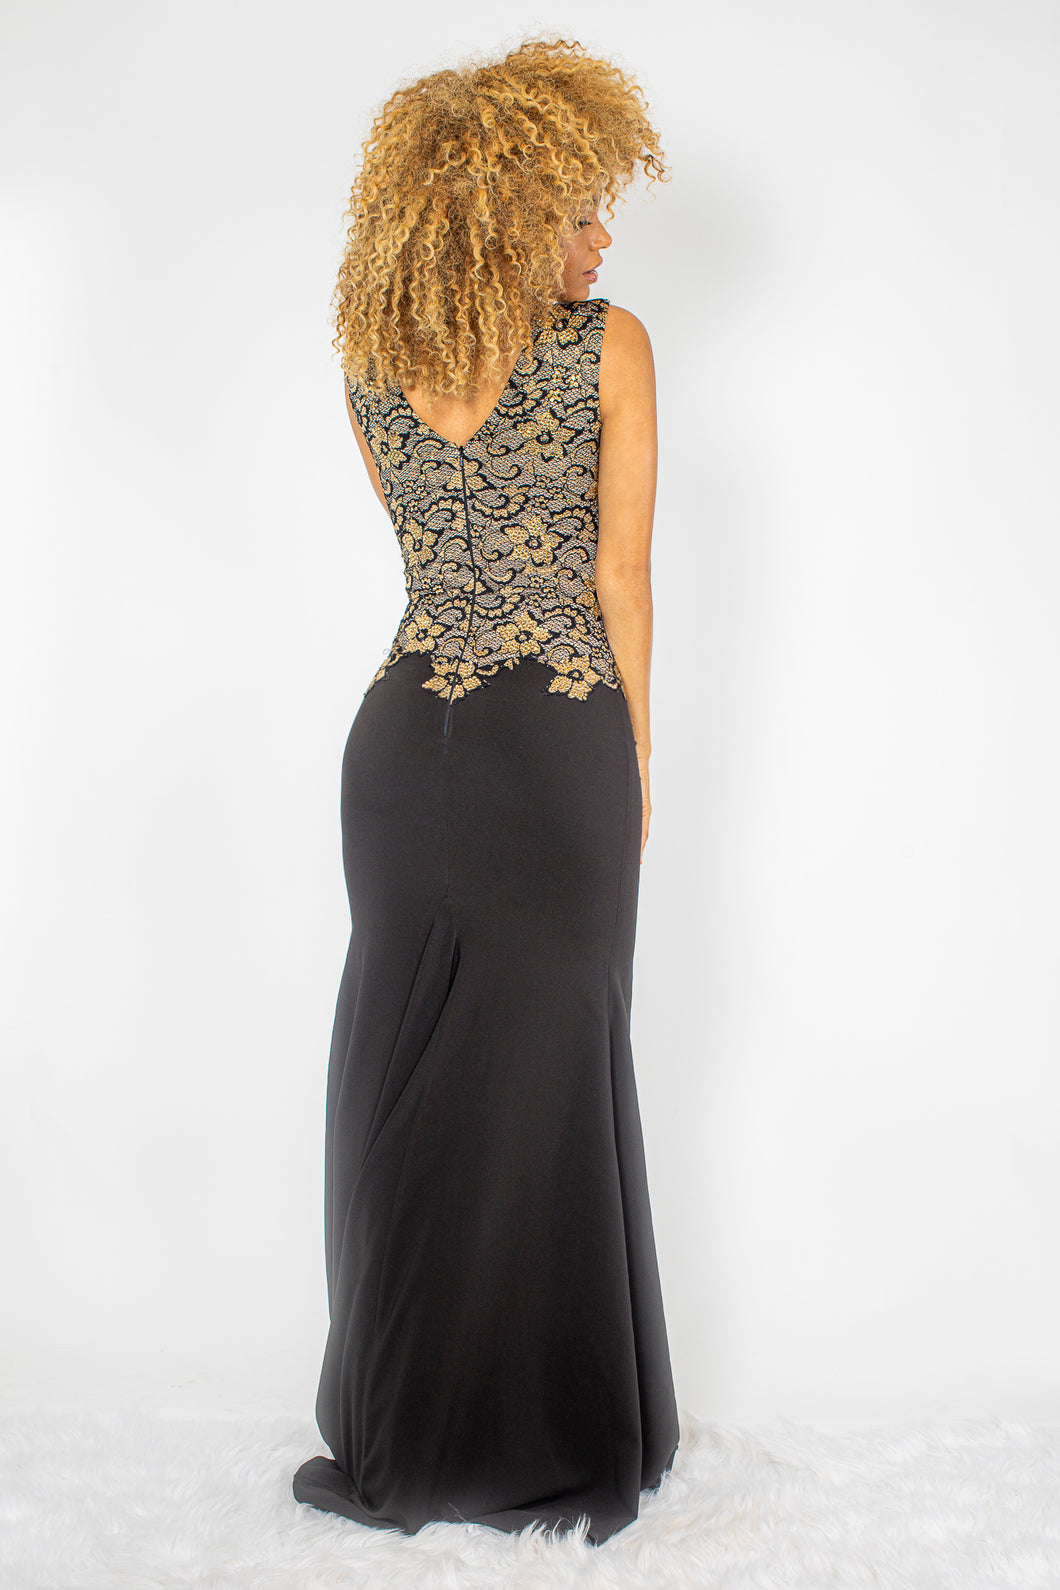 Amanda Black with Gold Crystal Long Dress - BACCIO Couture